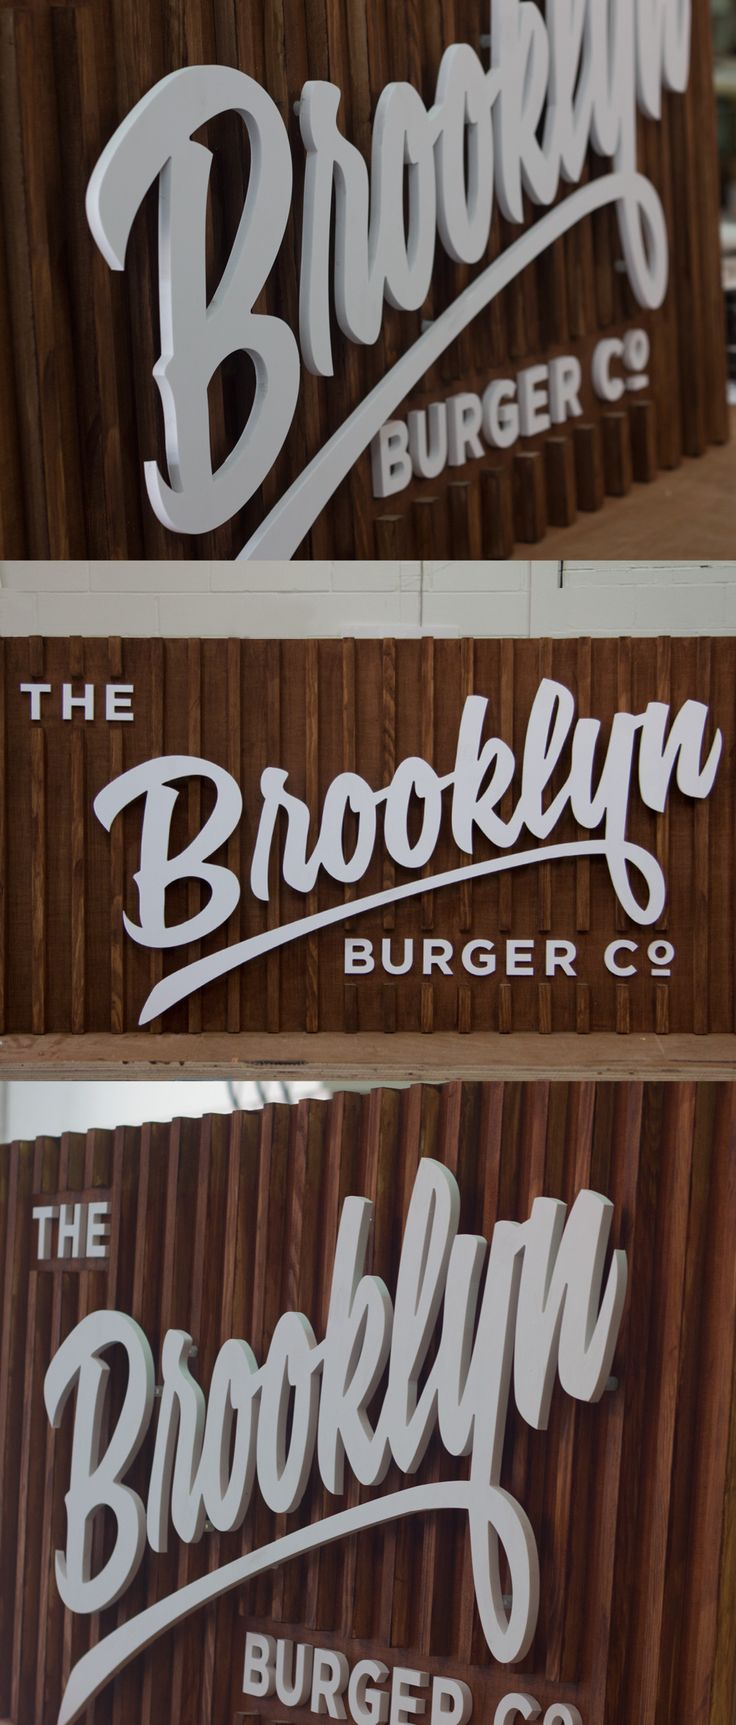 Vintage Slatted Wooden Sign by Goodwin & Goodwin. Having a natural wood finish, this sign is great for organic food makers. The slatted timber background with the raised lettering creates a lovely 3D effect. To order simply send us your logo and we can turn your logo into this wooden design, proof sent before work goes into production. http://www.goodwinandgoodwin.com/products/vintage-slatted-wooden-sign